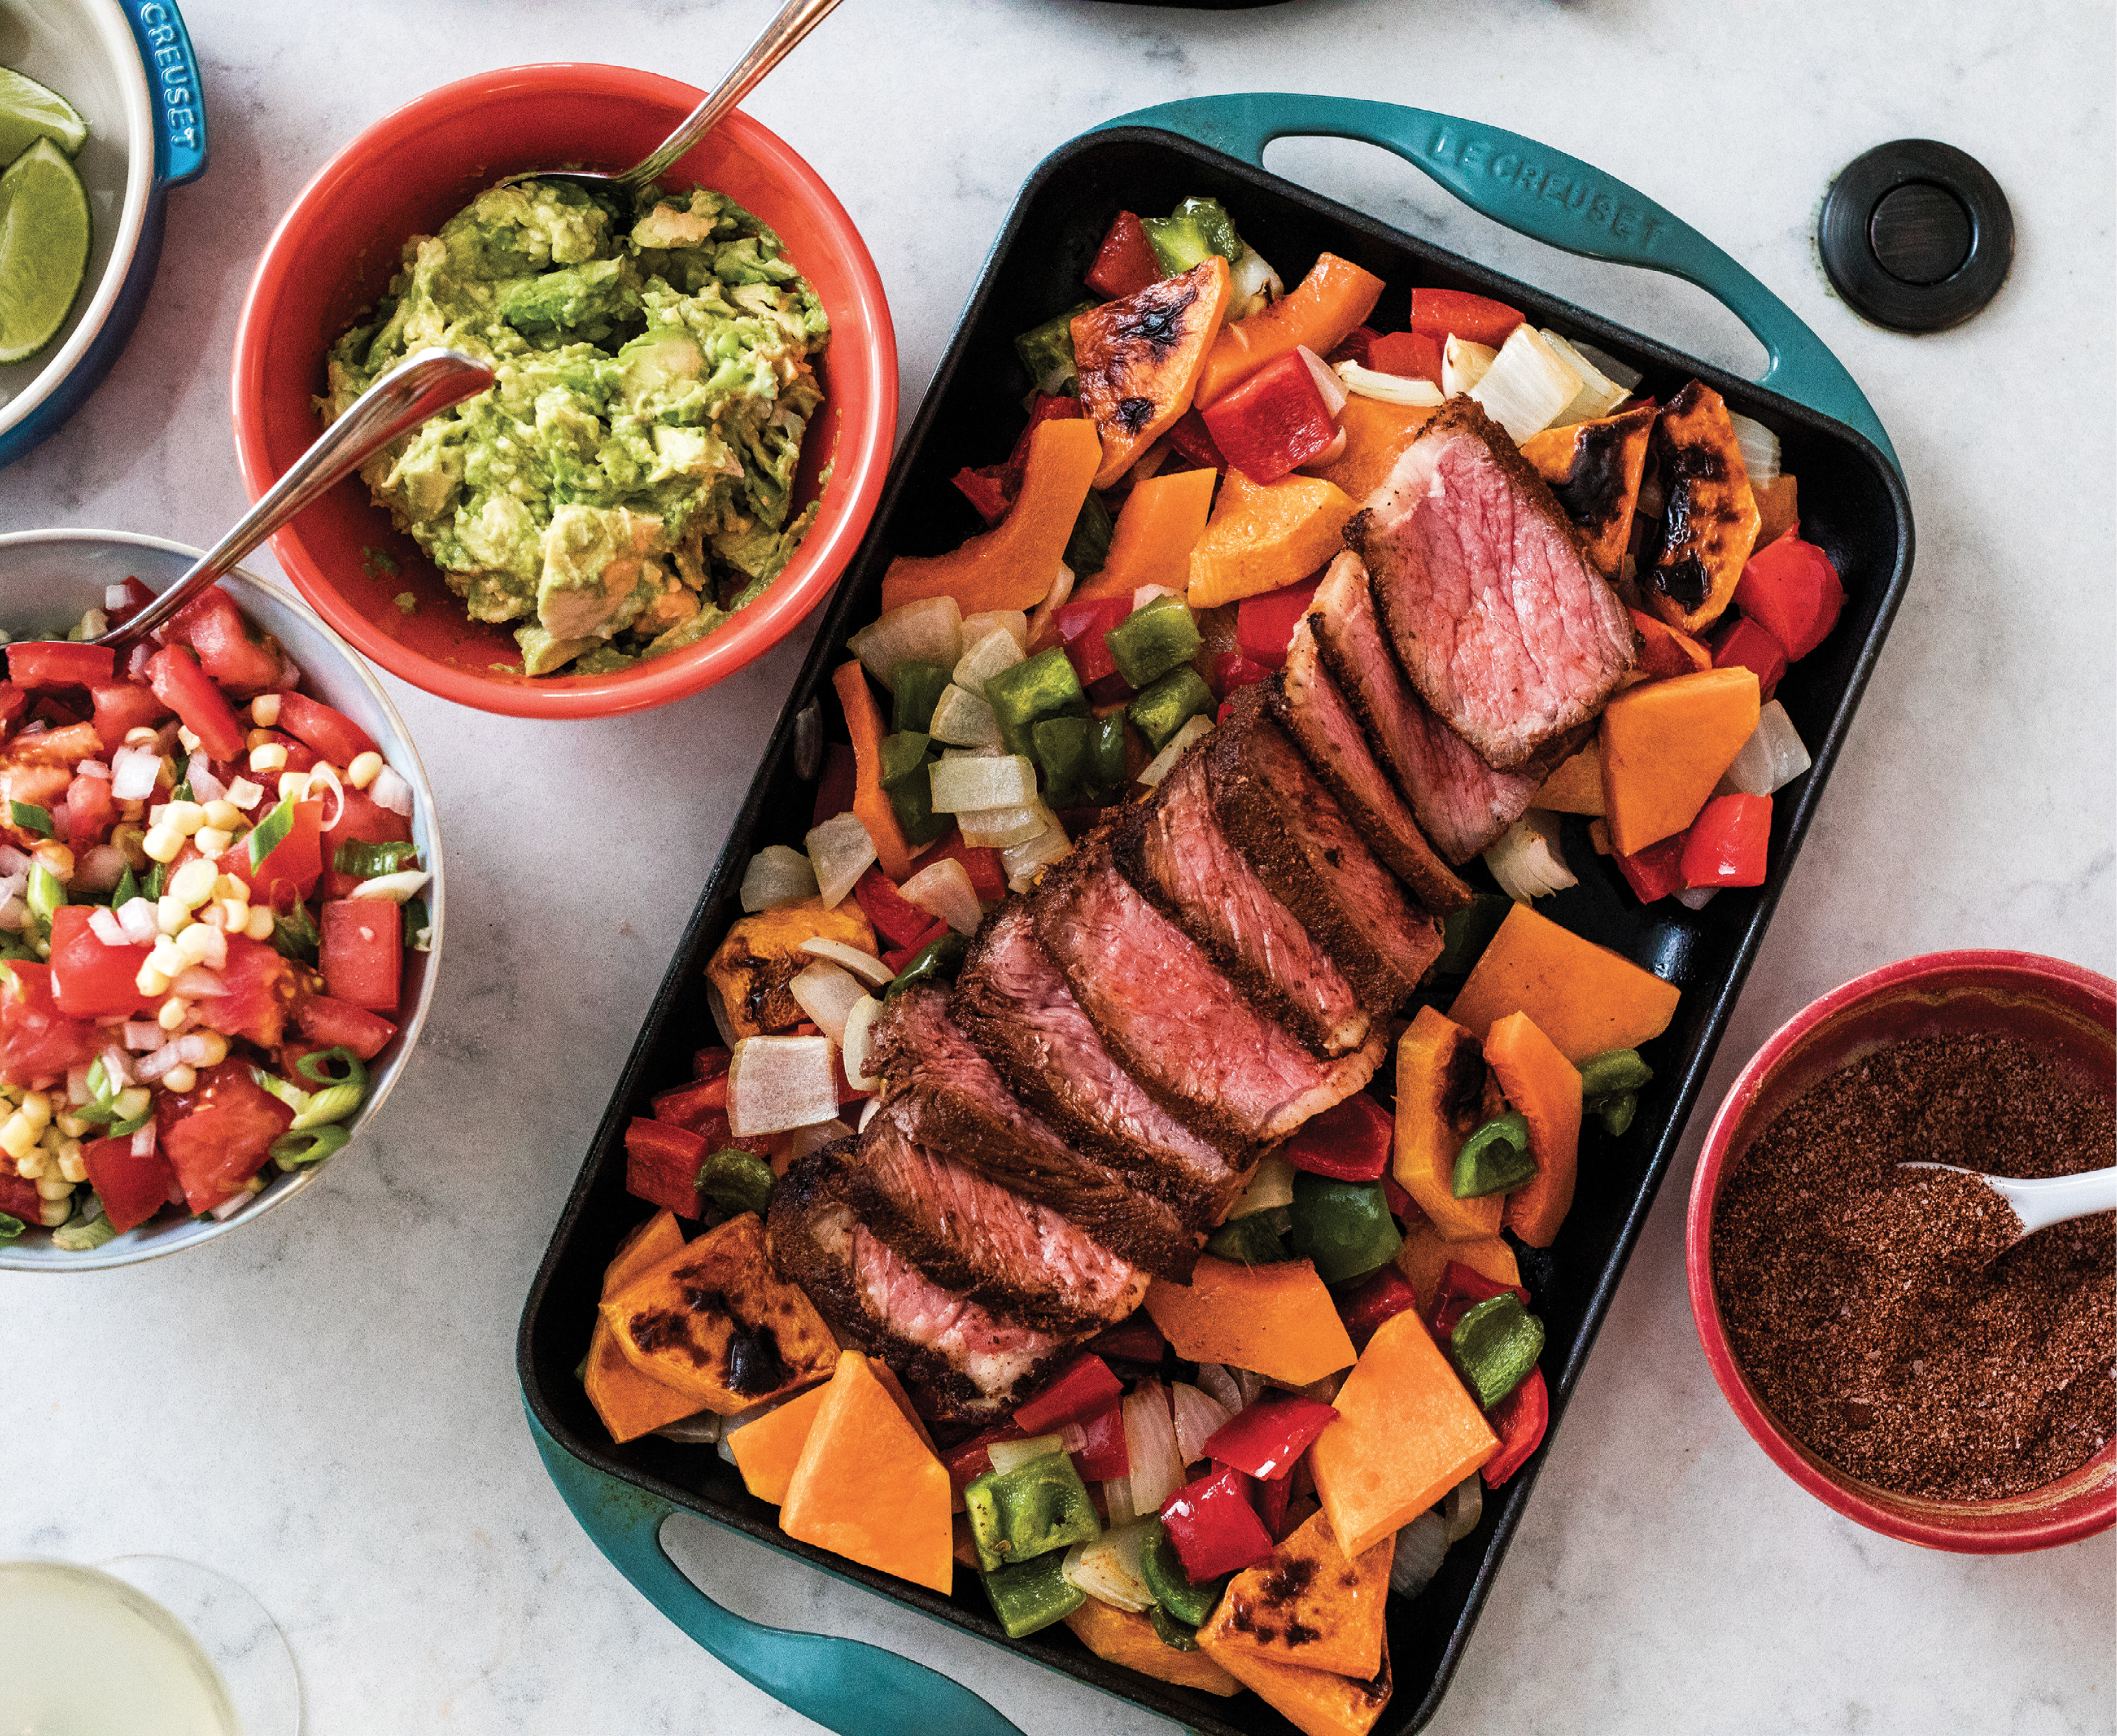 Taco night at the Raya household is a time to get creative: seasoned veggies and beef, guacamole, and pico de gallo are all fair game for filling. For a vegetarian taco, MariElena likes stuffing a tortilla with thick slices of spiced butternut squash.